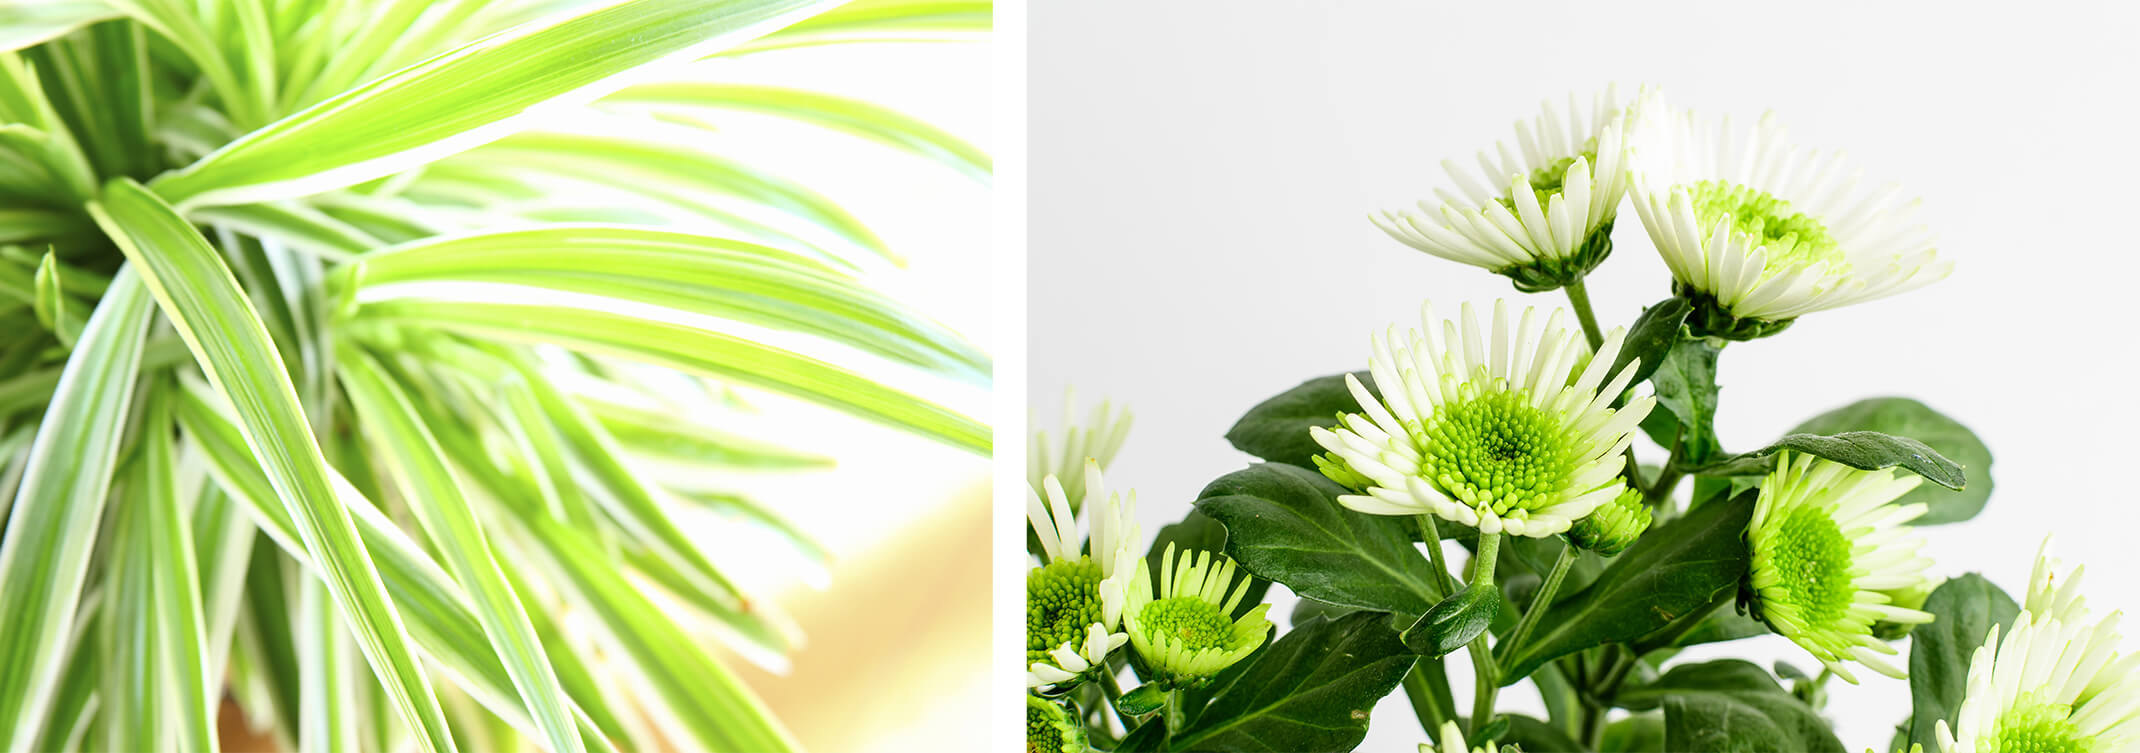 2 images: a closeup of a spider plant, and a close up of white garden mums